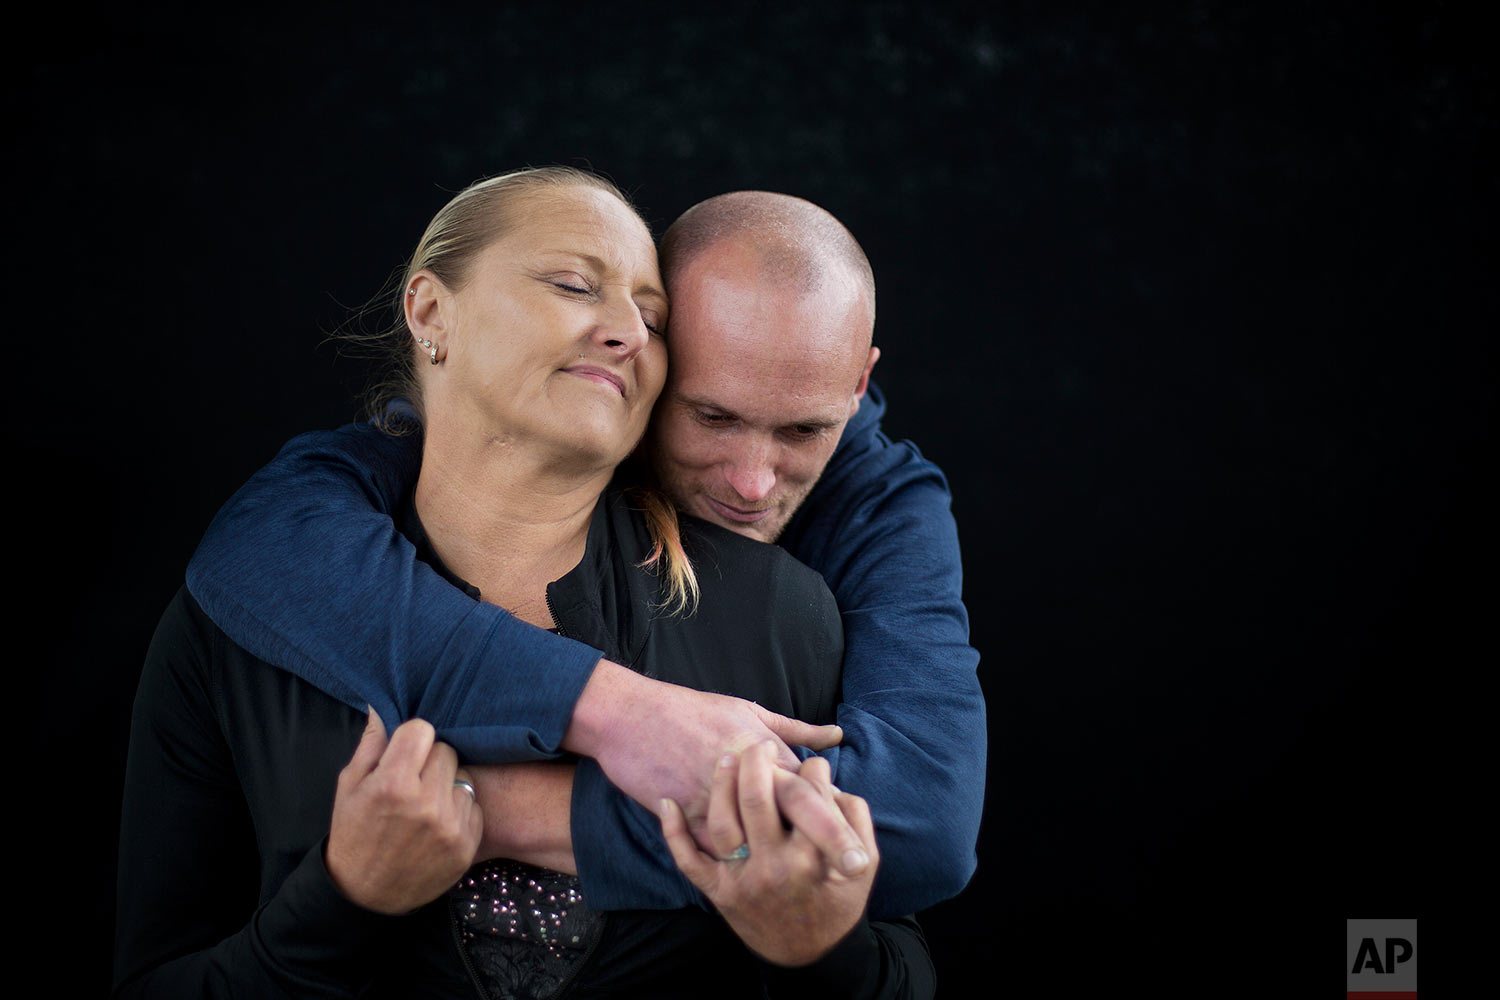 """Staci Hadley, left, and boyfriend Deric Hensler, embrace during a portrait while stopping by a needle exchange program in Aberdeen, Wash., Wednesday June 14, 2017. """"It's crazy how things can spiral out of control. Not too long ago, a year ago, we had credit cards and bank accounts, jobs, a house,"""" said Hadley. (AP Photo/David Goldman)"""